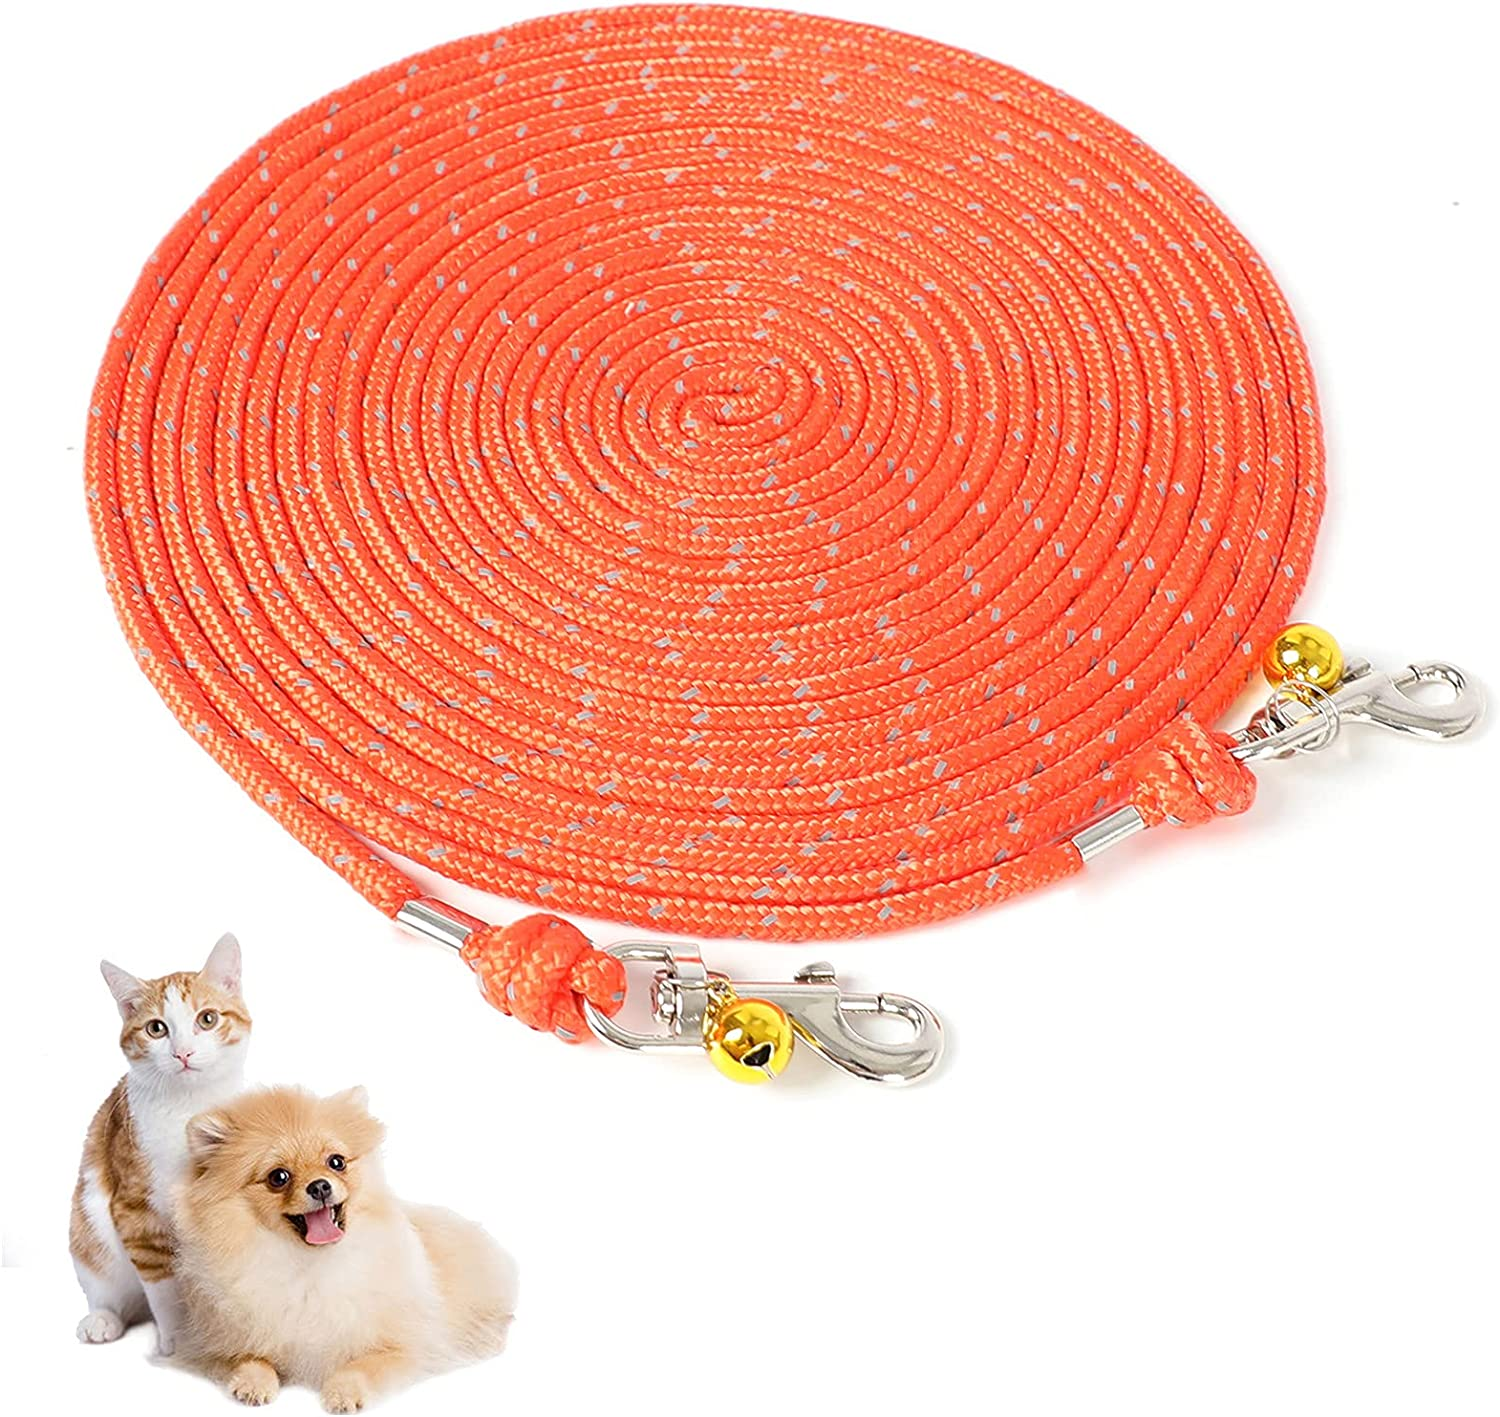 Cat Cable Out Leash 26-feet Escape Proof Walking Leads Long Durable Reflective Extender Training Control Play Yard Backyard Outdoor for Puppy, Kitten, Rabbits and Small Animals, Orange : Pet Supplies